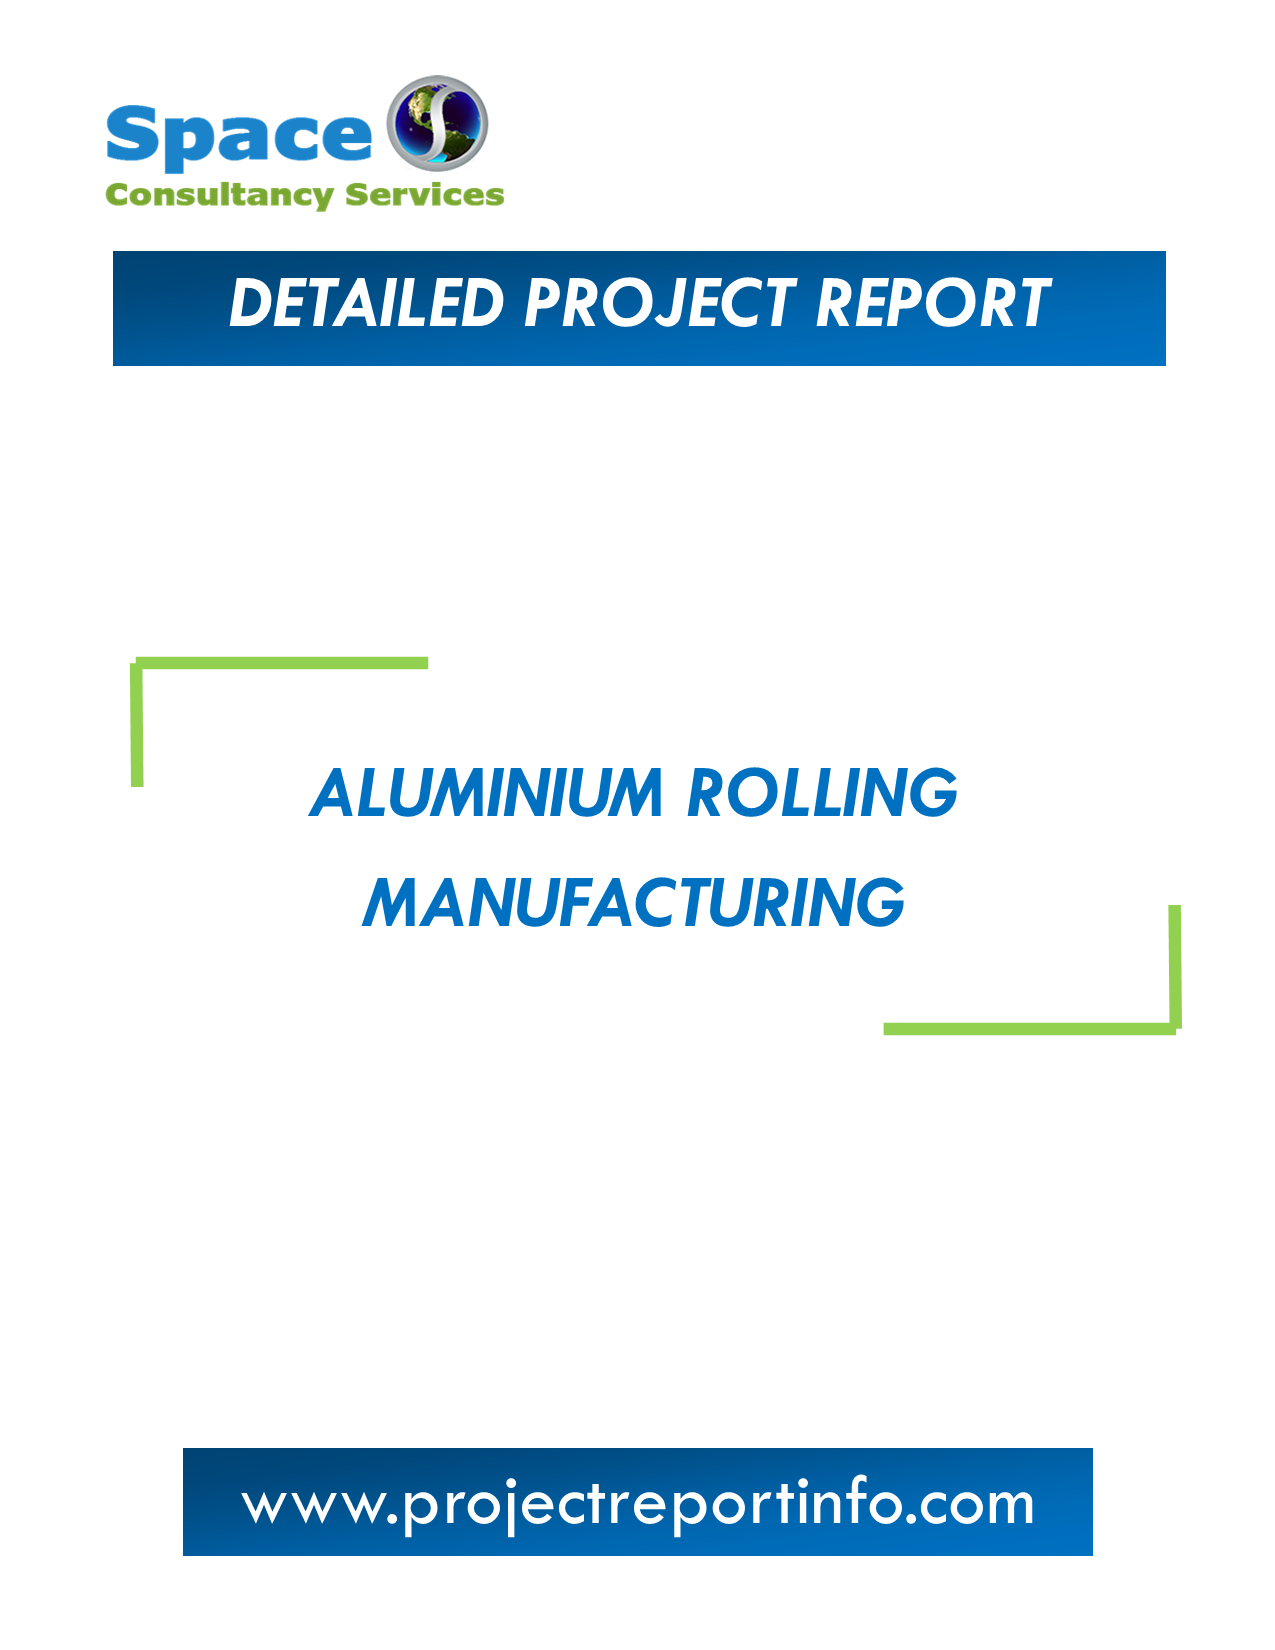 Project Report on Aluminium Rolling Manufacturing